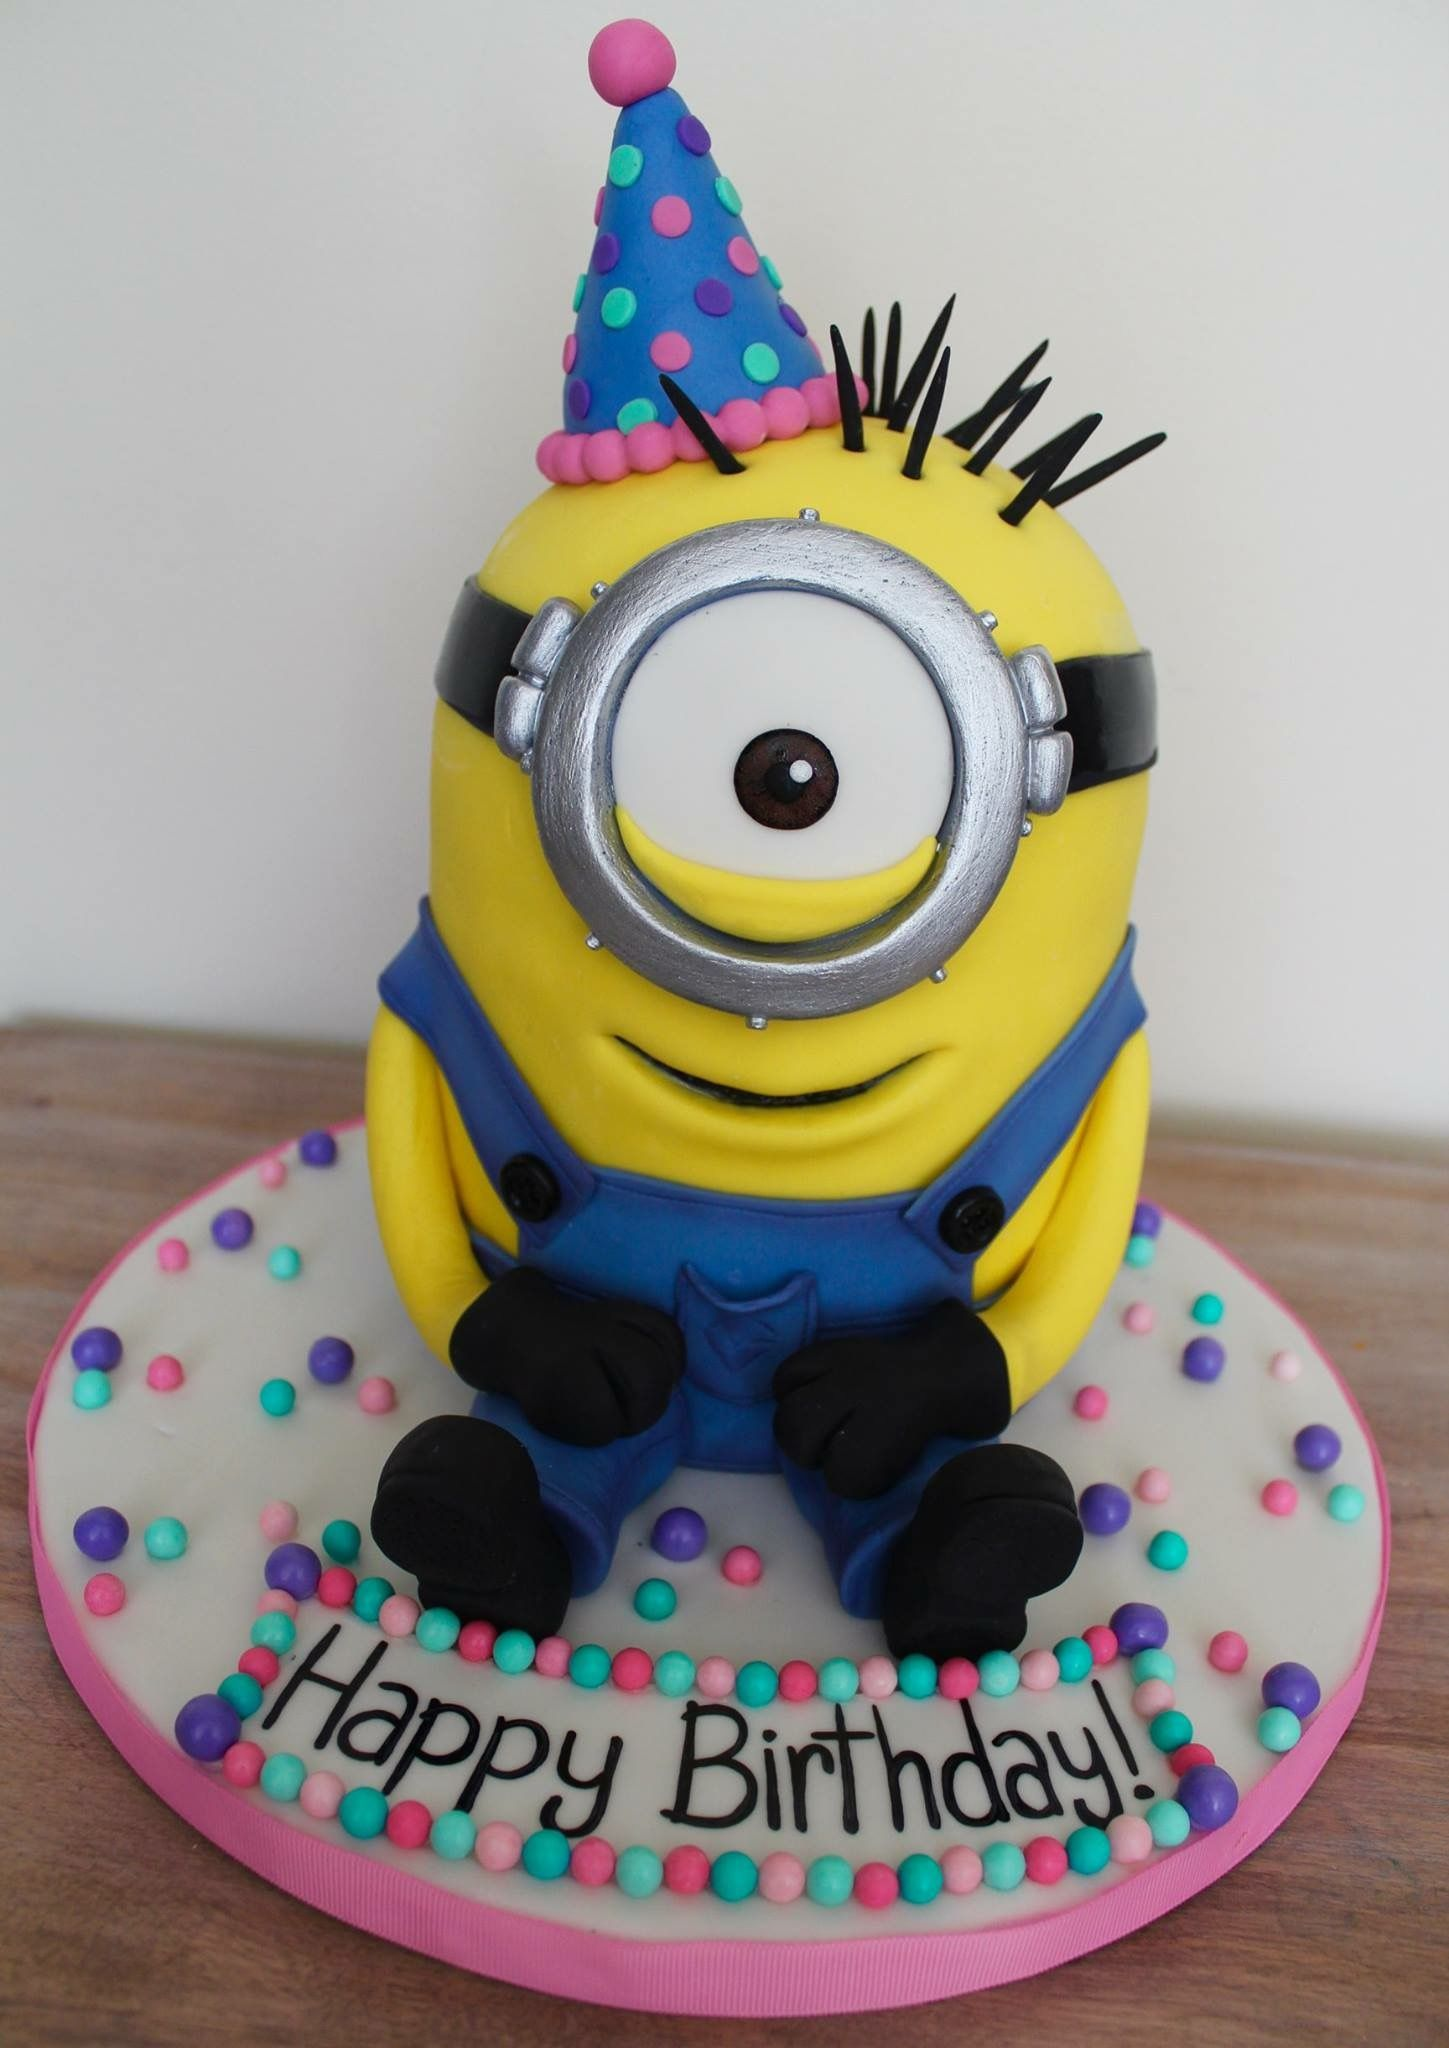 3D minion sculpted birthday cake